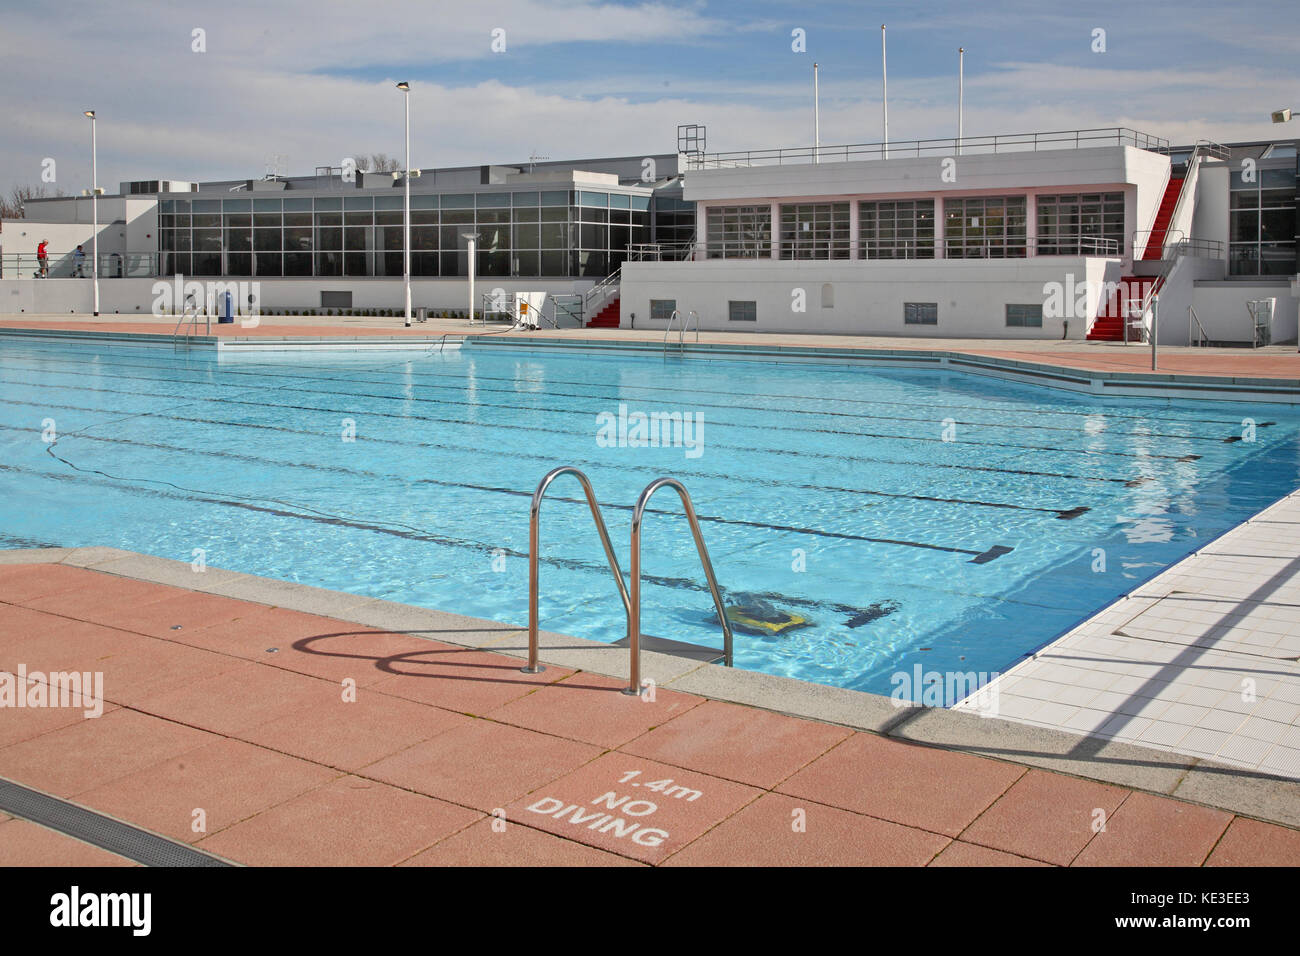 Leisure Centre Swimming Pool Stock Photos Leisure Centre Swimming Pool Stock Images Alamy